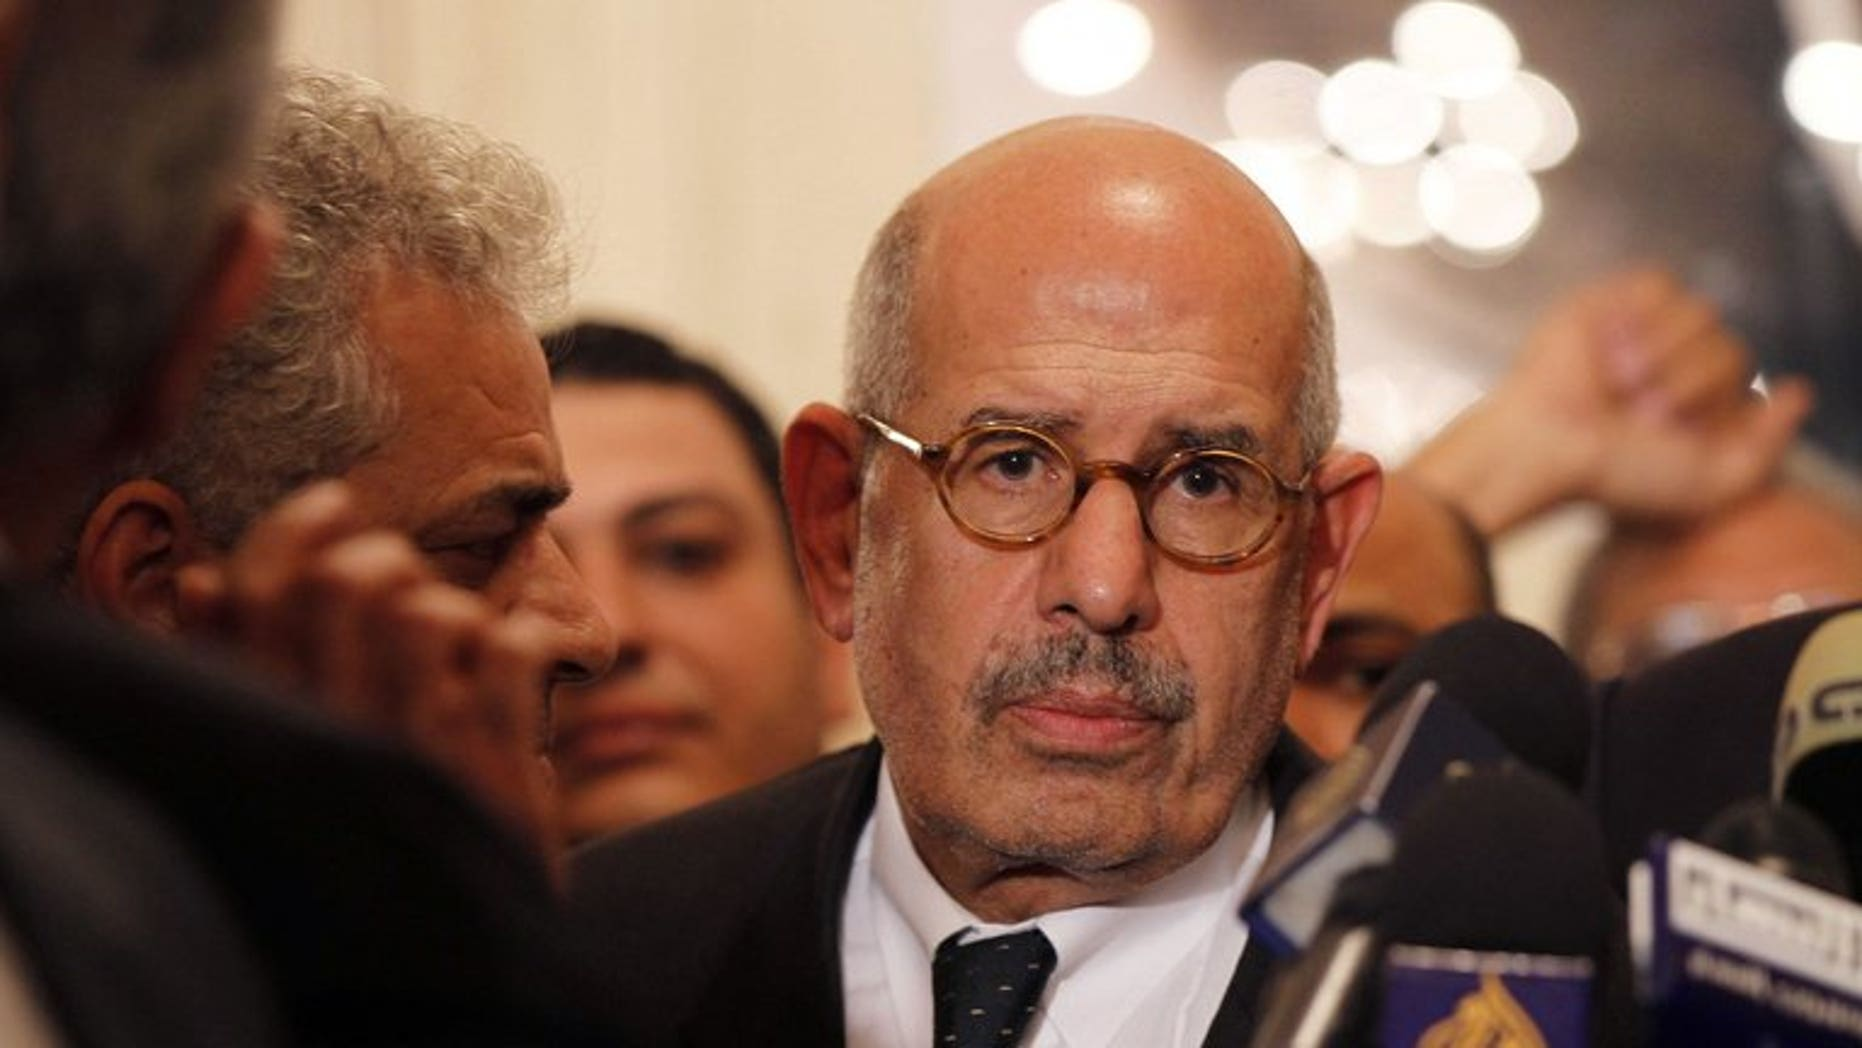 Mohamed ElBaradei, pictured on November 22, 2012, in Cairo, has been chosen as Egypt's new prime minister, the Tamarod campaign behind the protests that toppled Islamist president Mohamed Morsi said on Saturday after talks with the country's interim president.